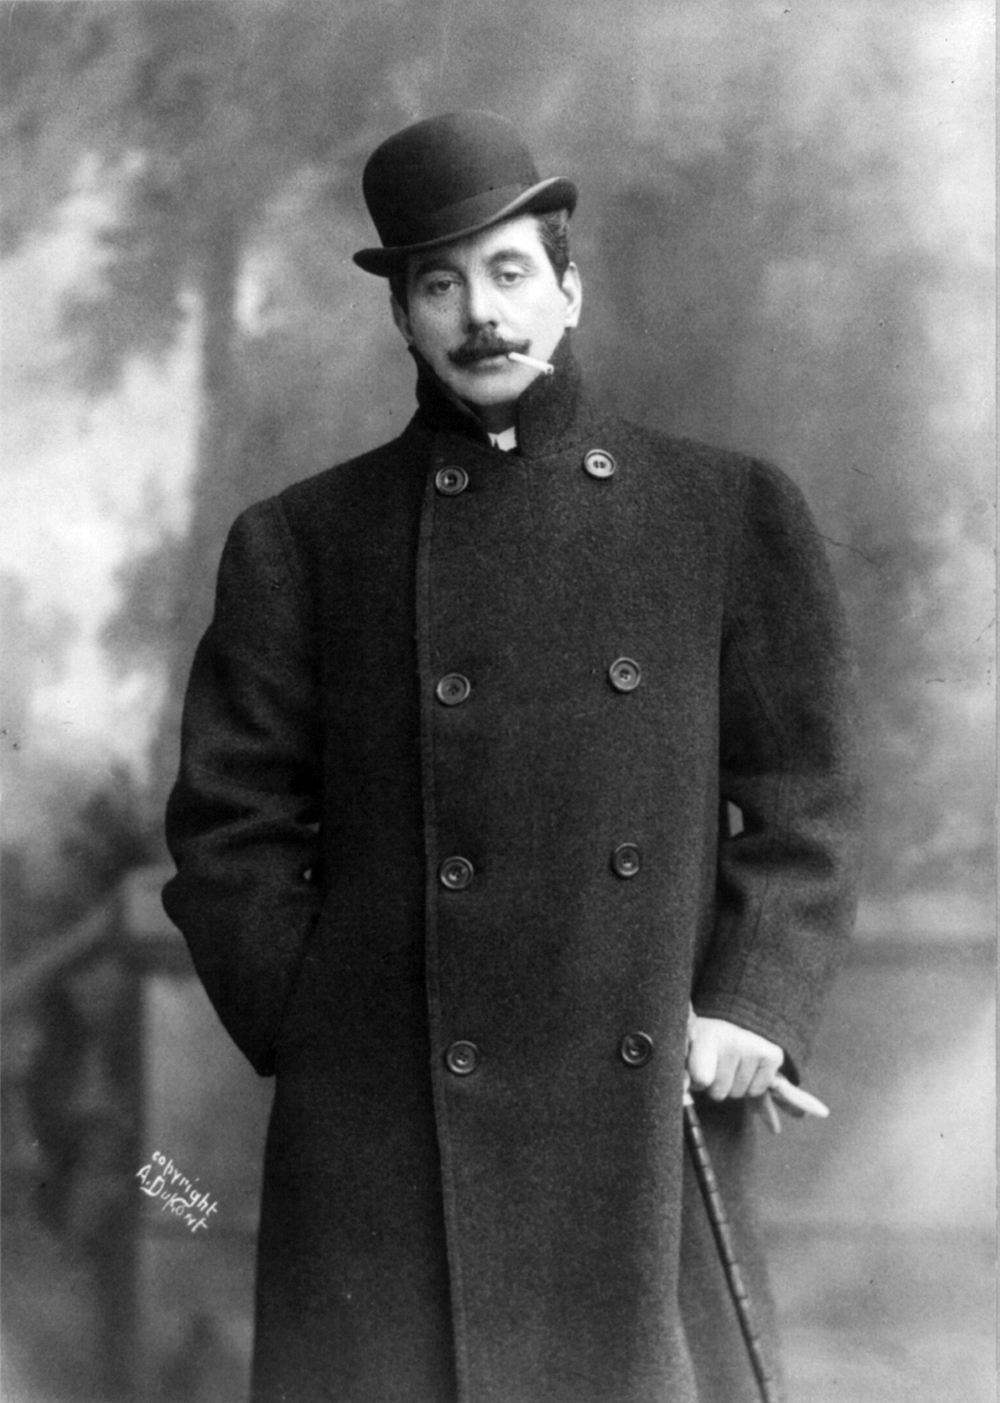 Public domain - 1908 photo of Giacomo Puccini